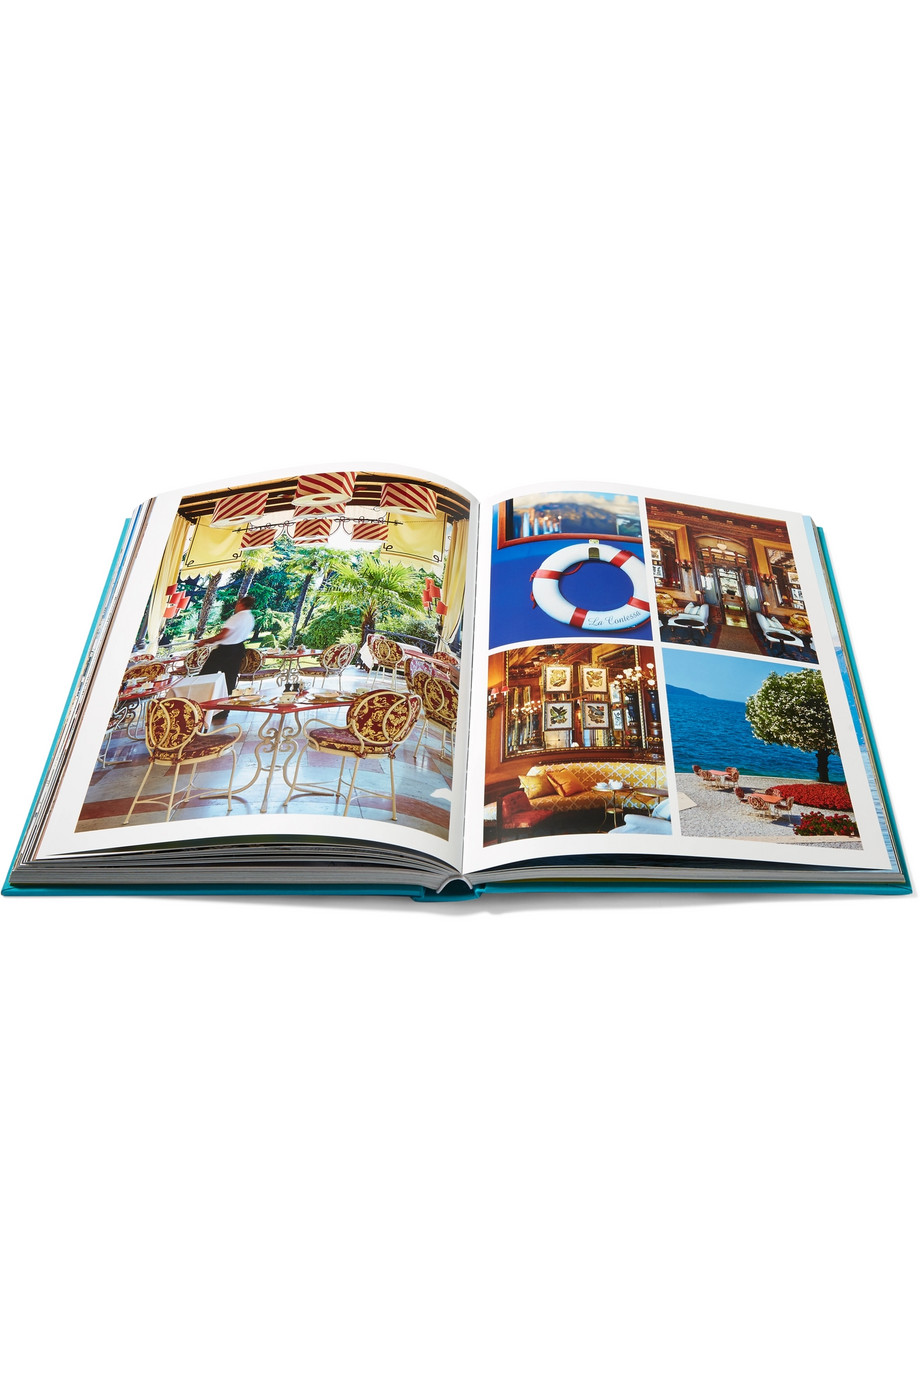 Assouline Chic Stays by Condé Nast Traveler hardcover book